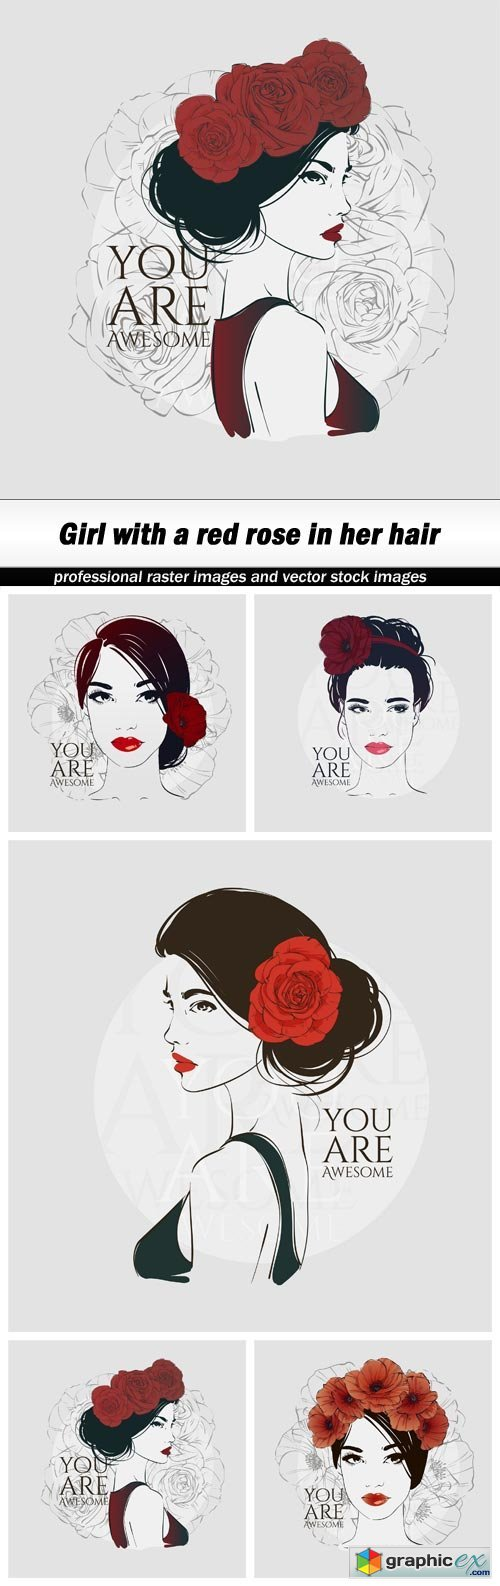 Girl with a red rose in her hair - 5 EPS